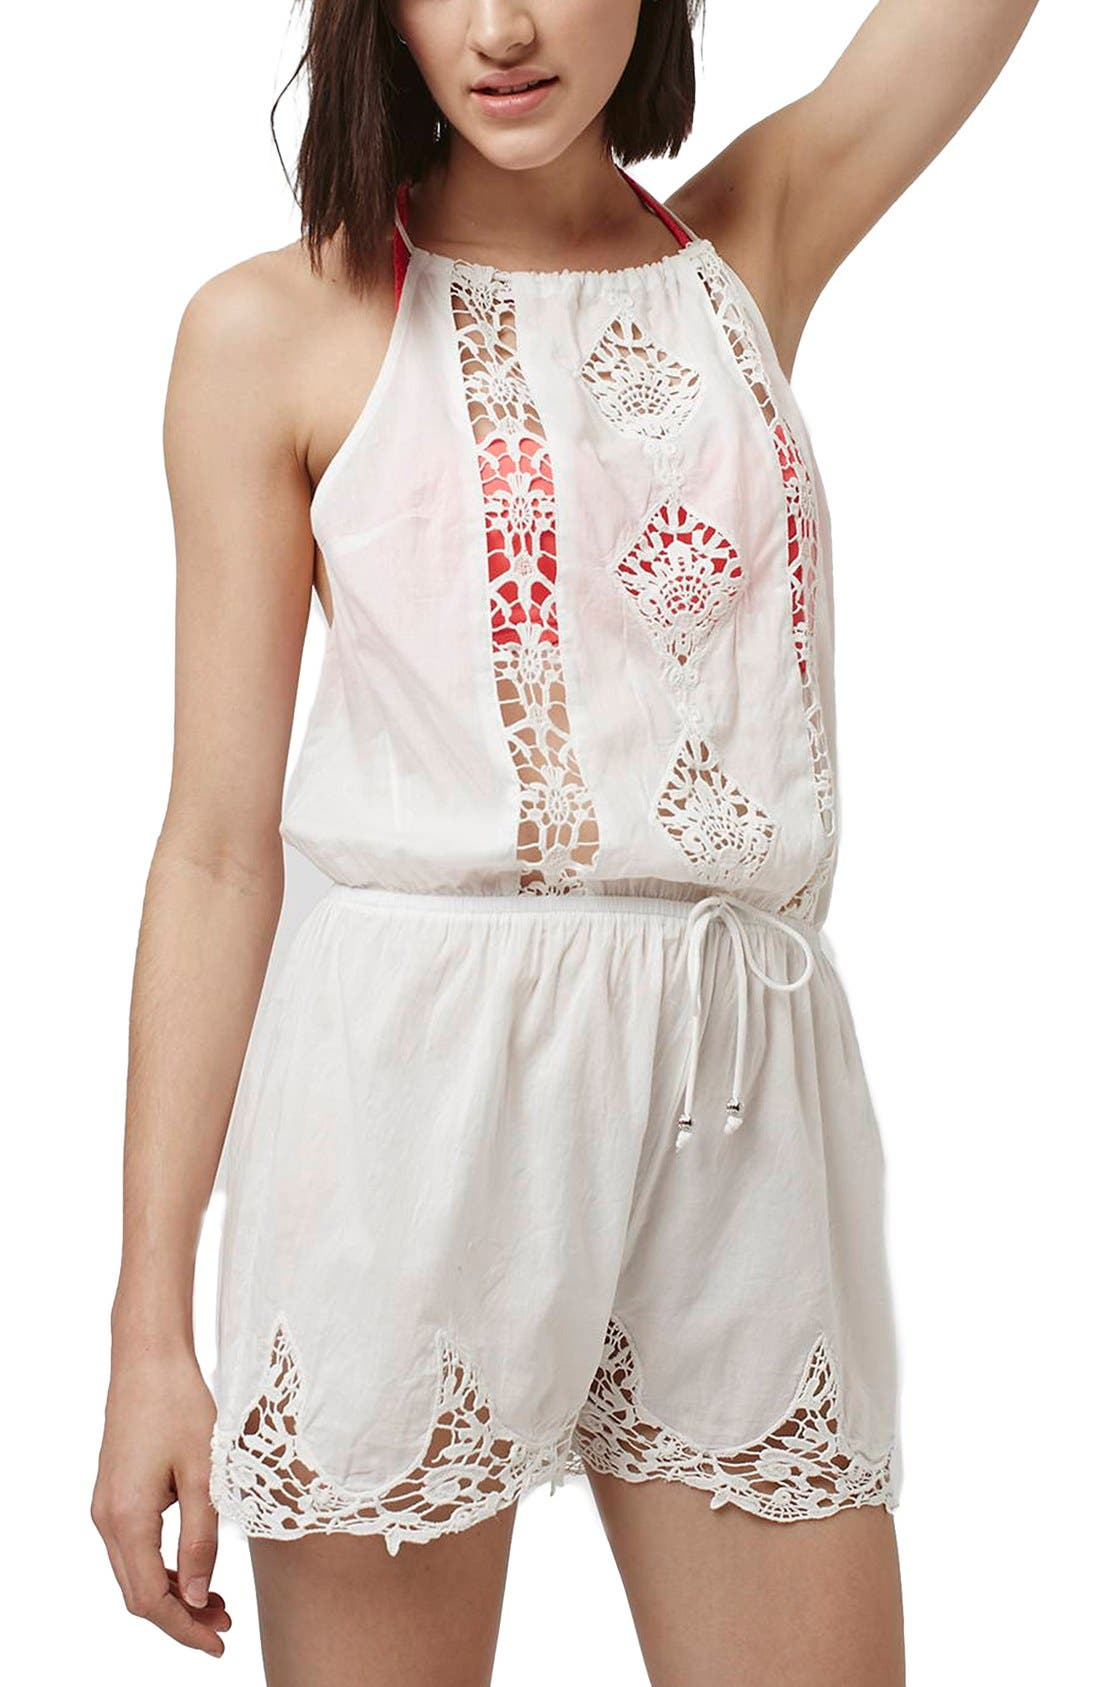 Alternate Image 1 Selected - Topshop Crochet Lace Inset Romper